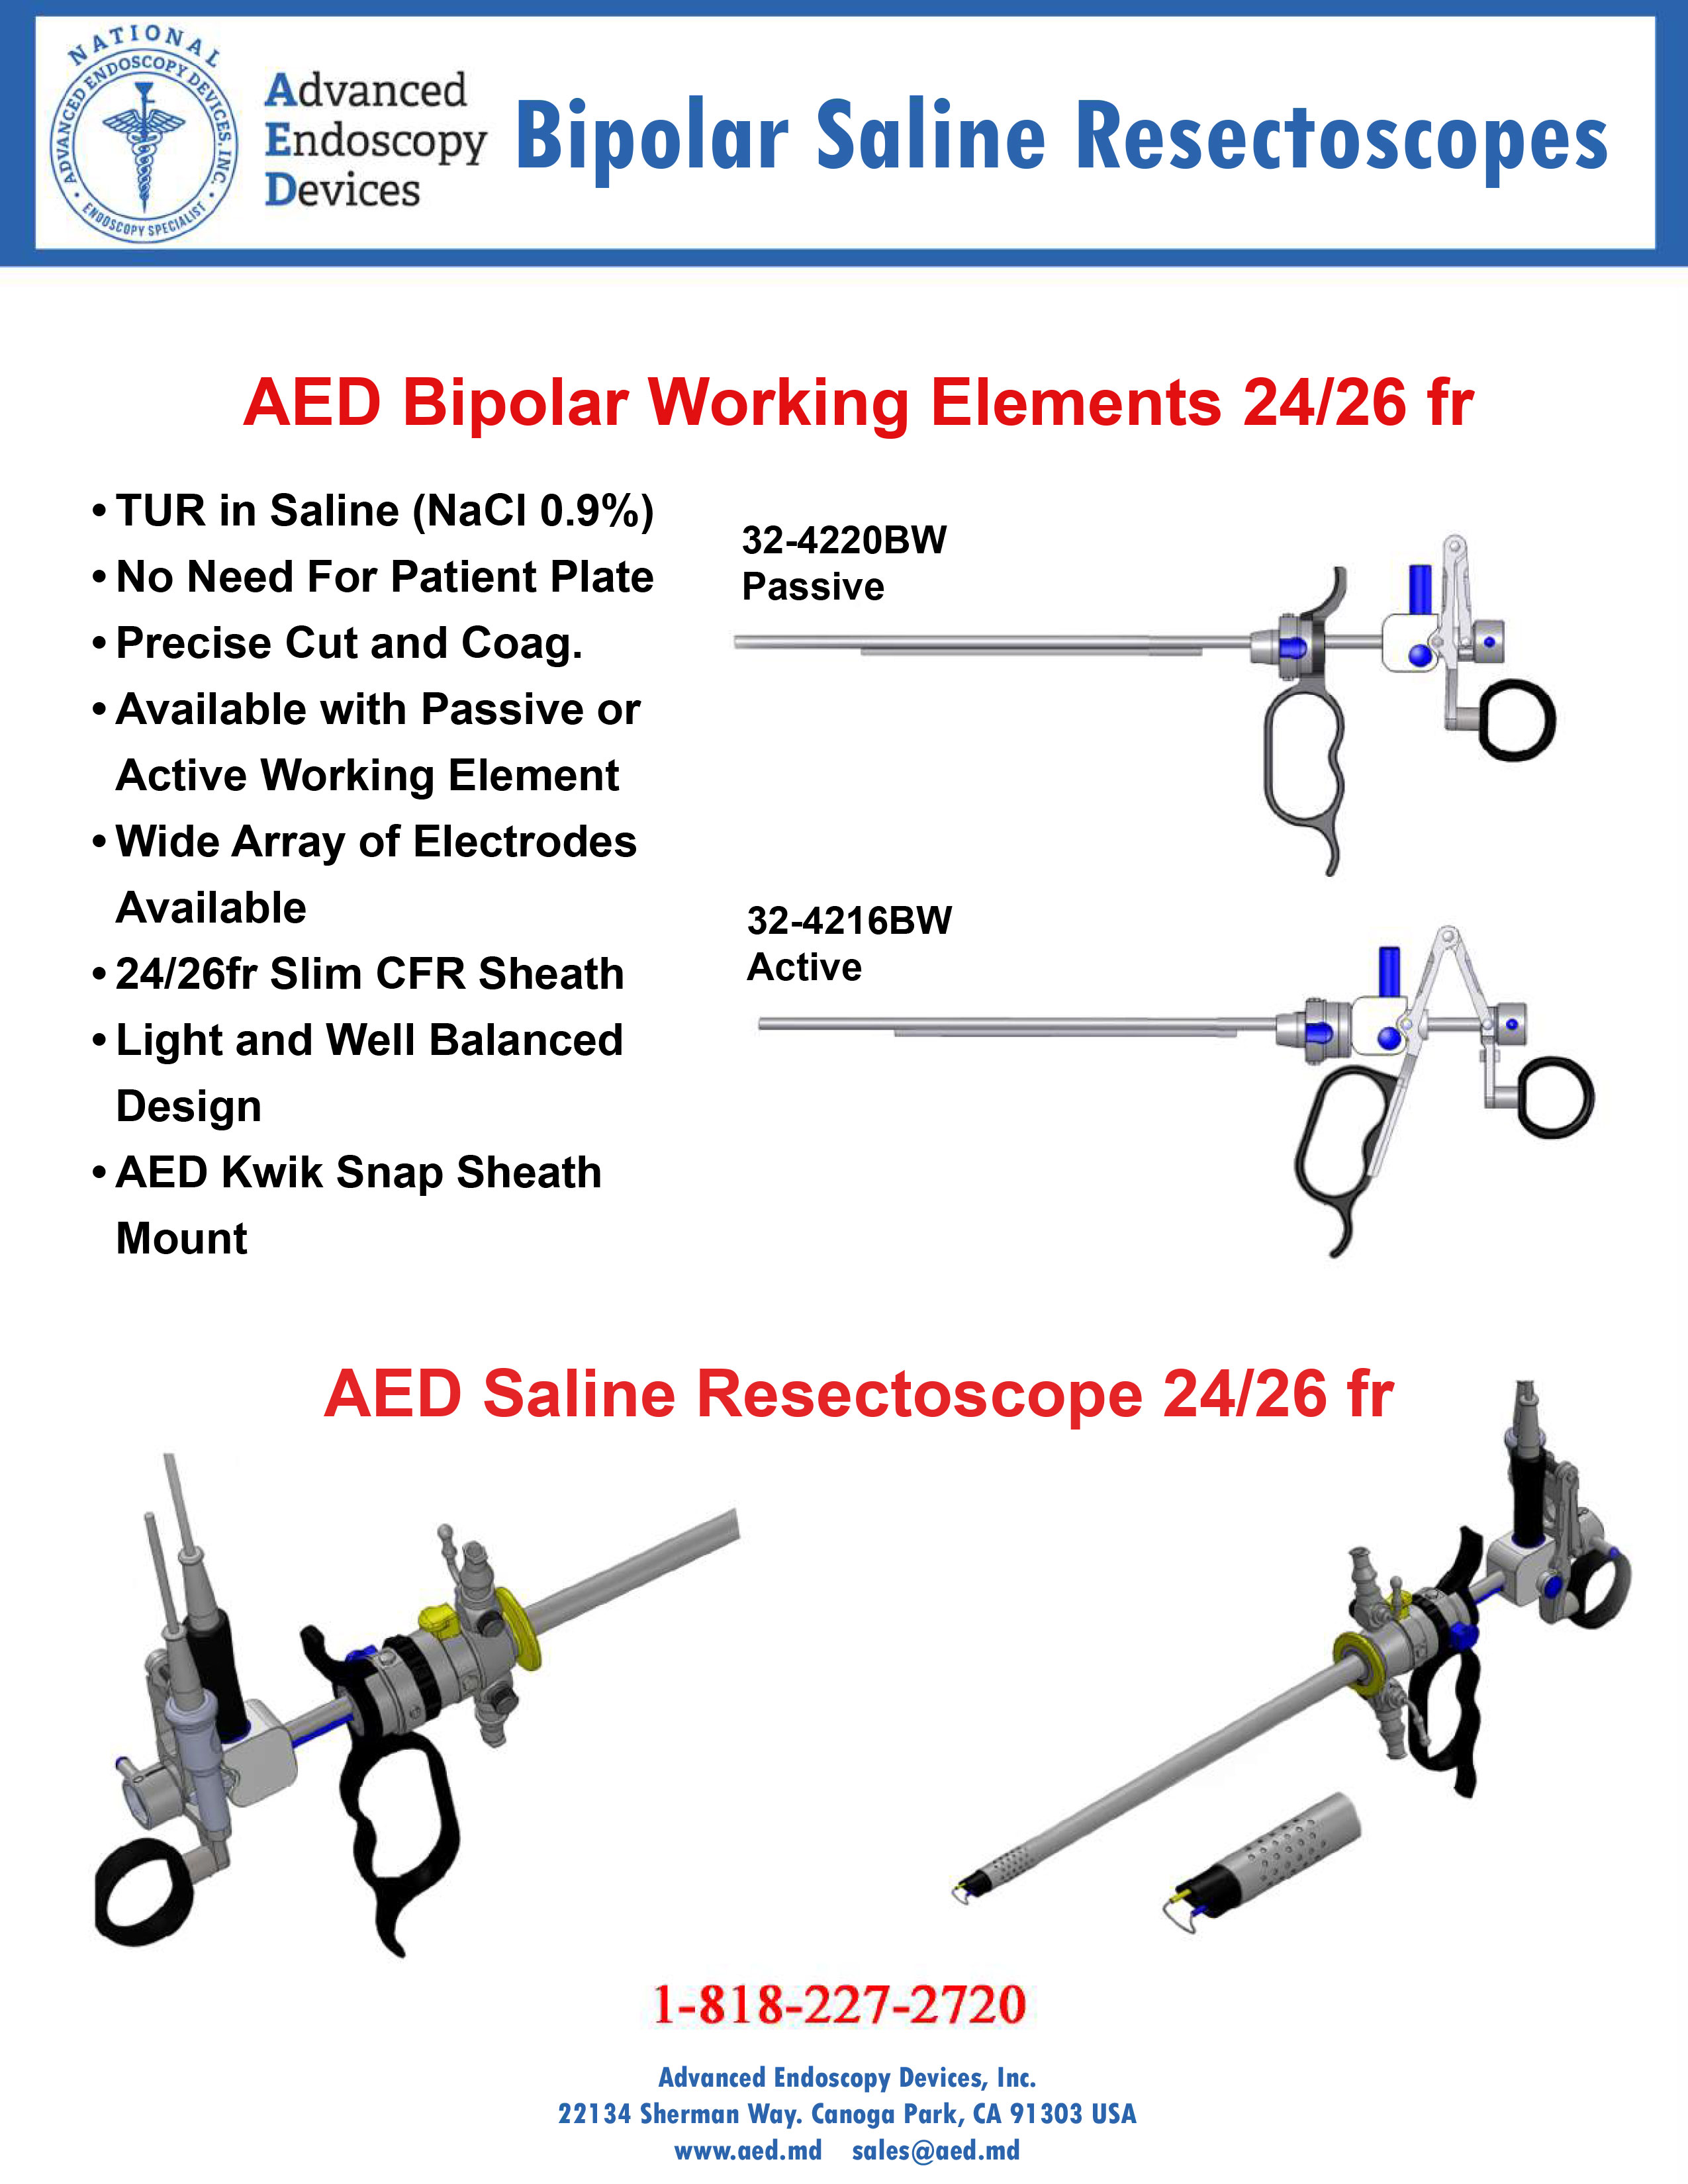 Bipolar Saline Resectoscopes Product Page